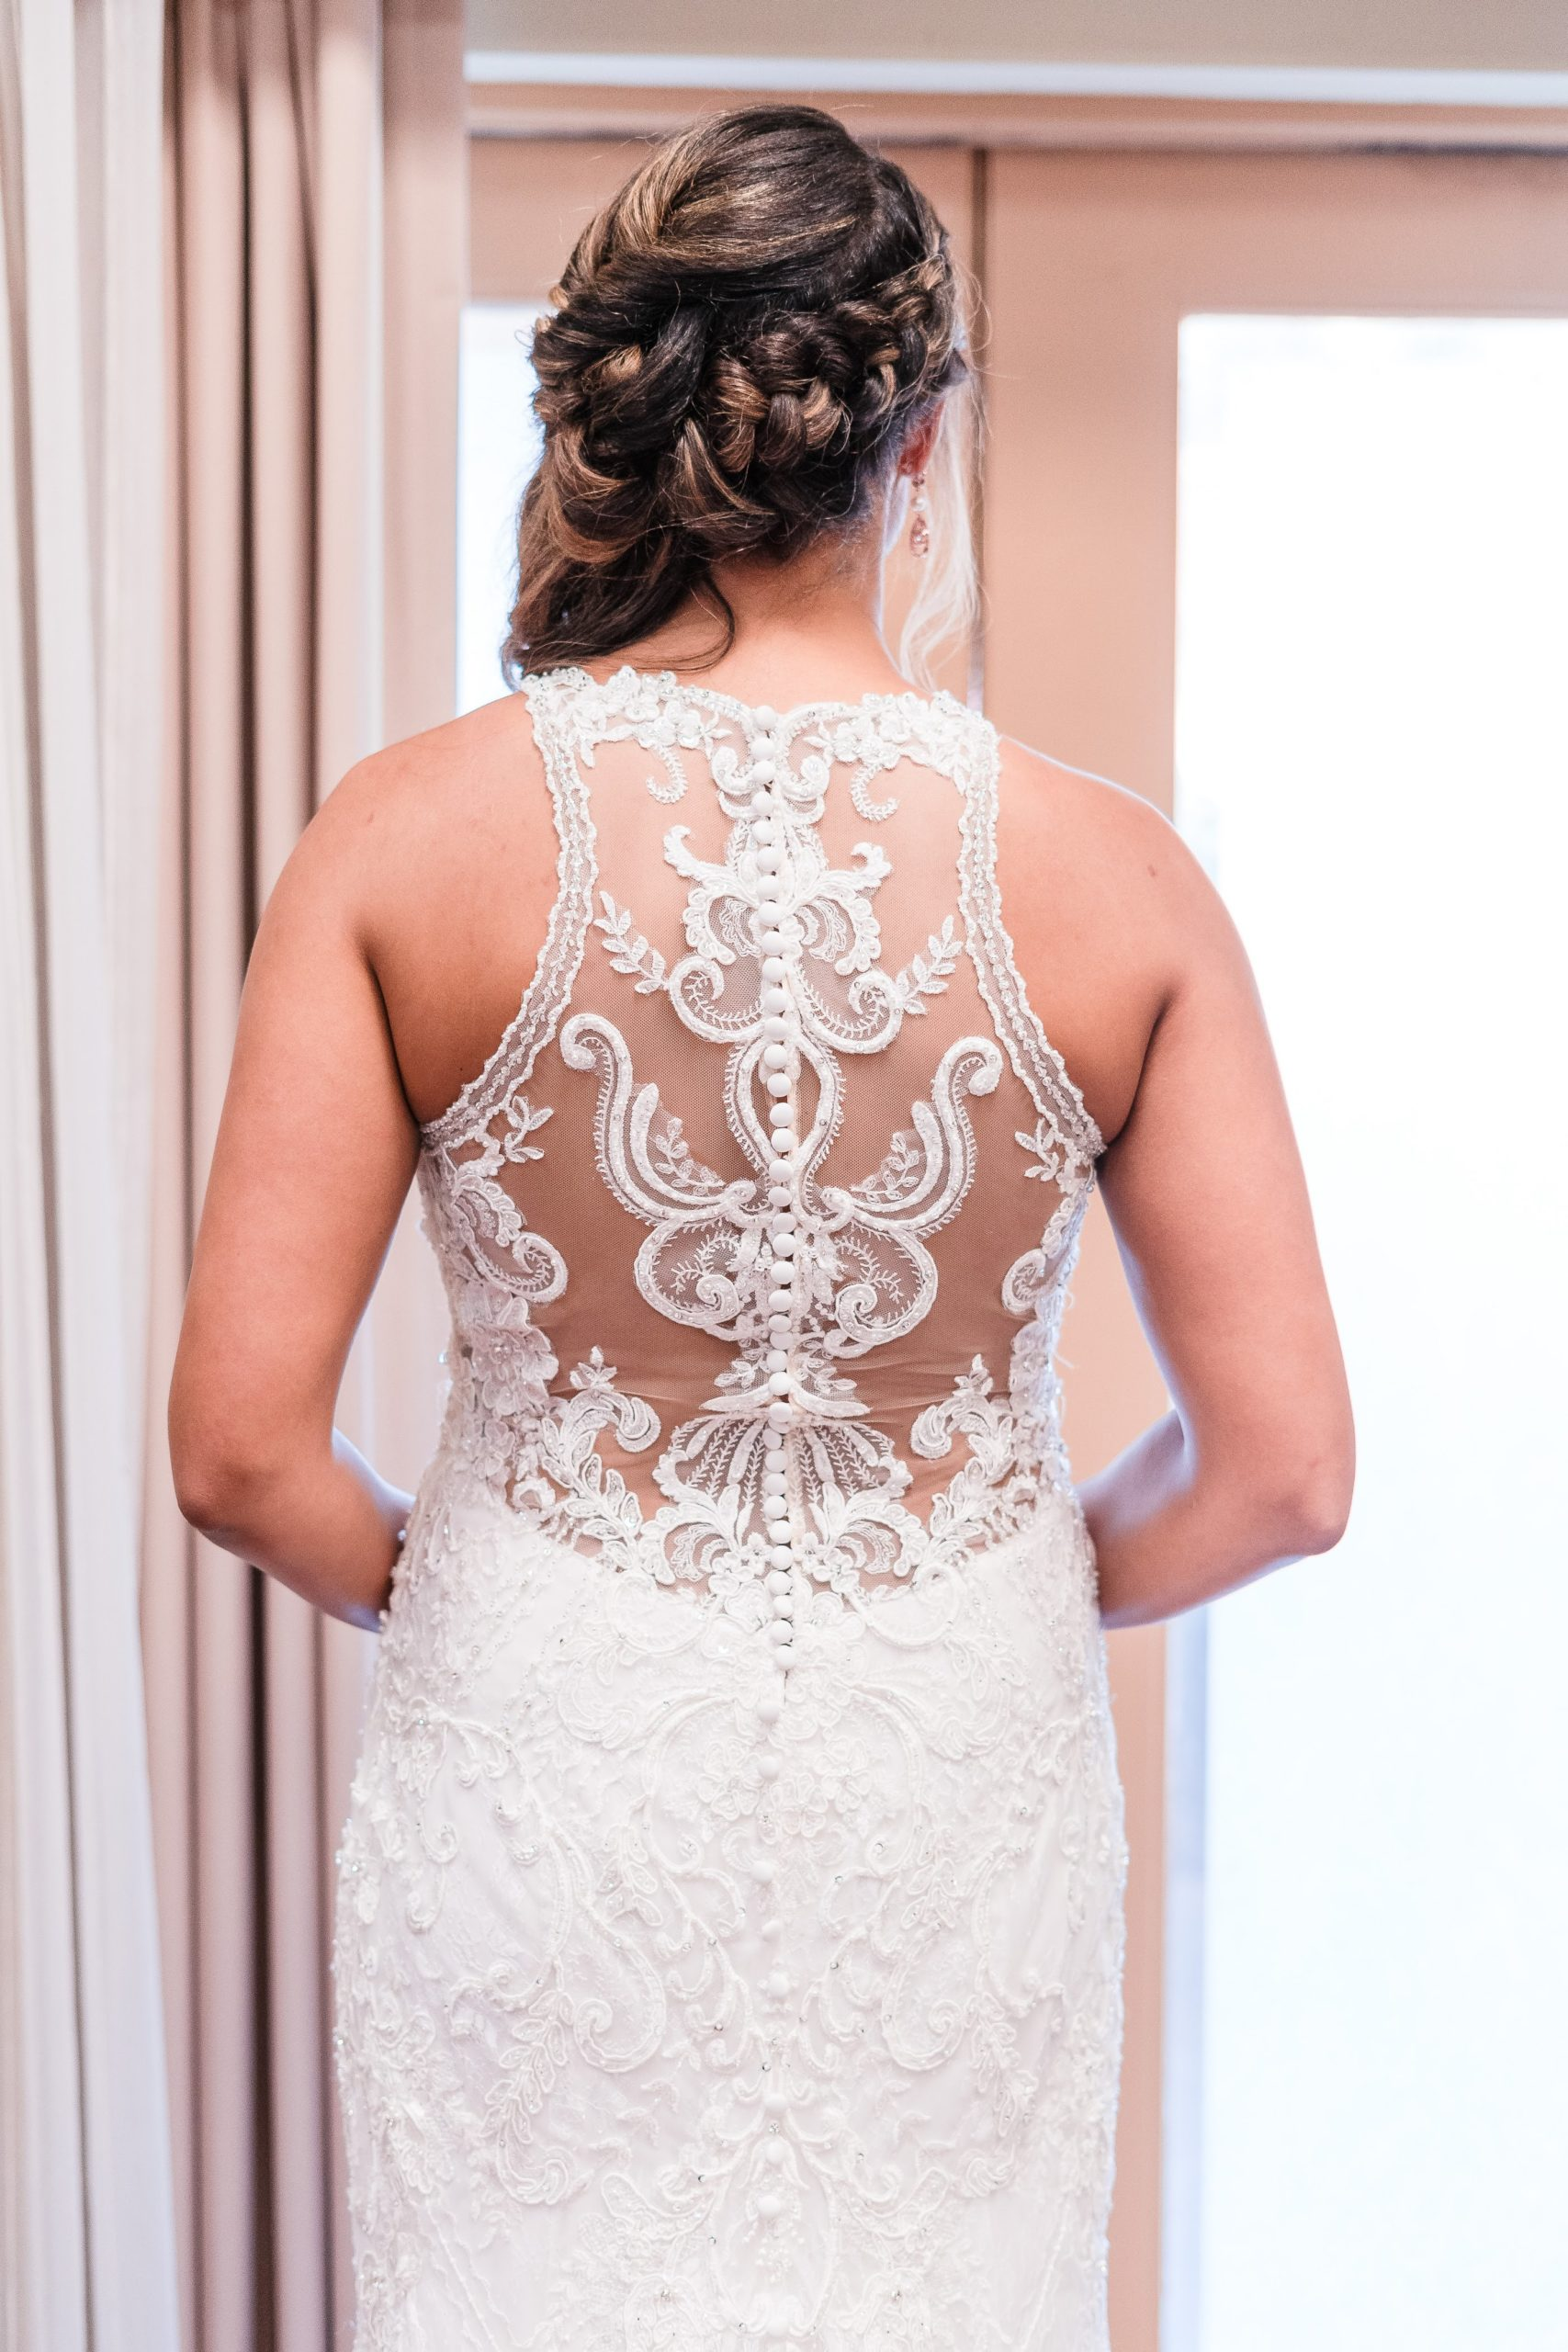 details of back of wedding dress